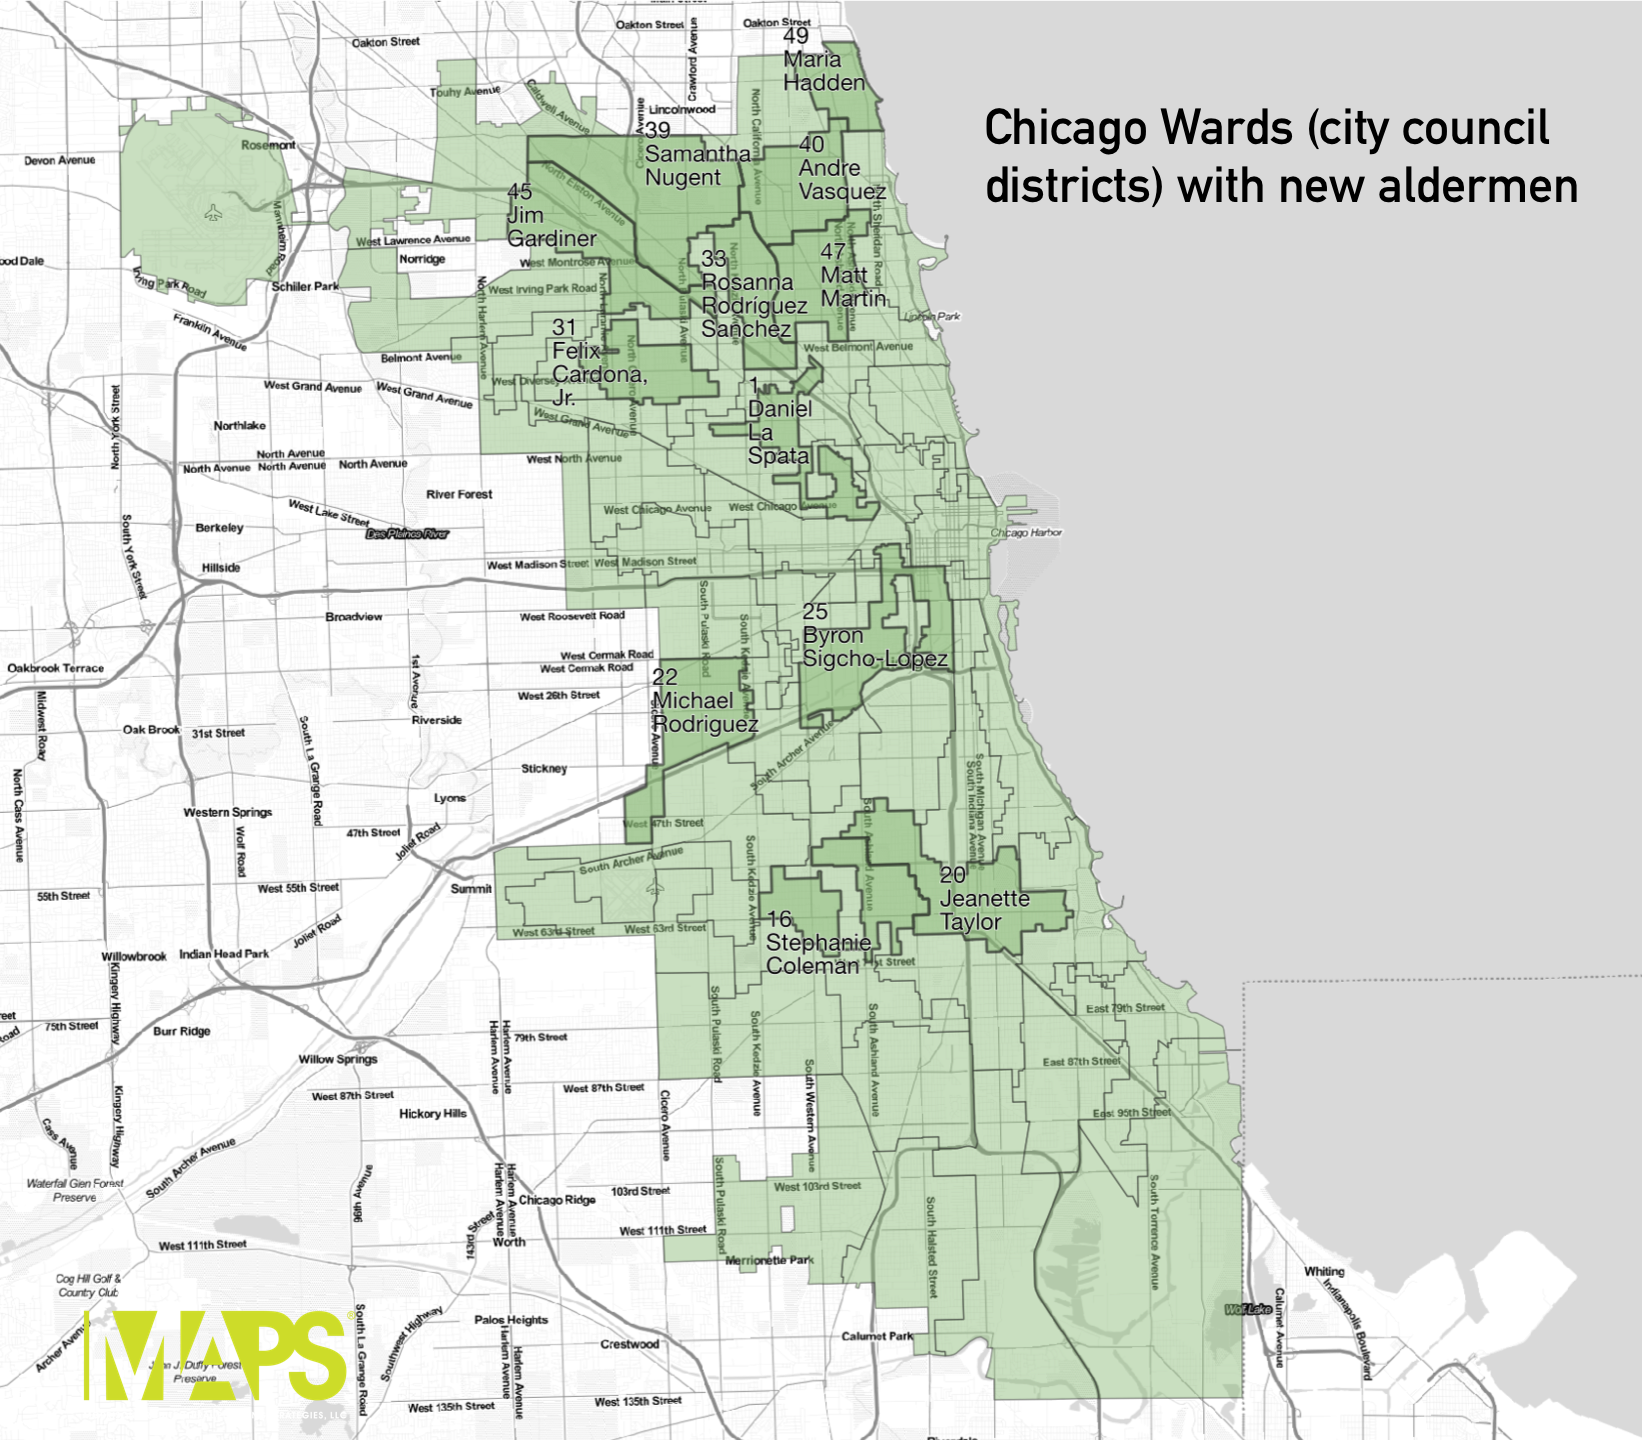 A Chicago ward map with only the wards with a new alderman highlighted and labeled.